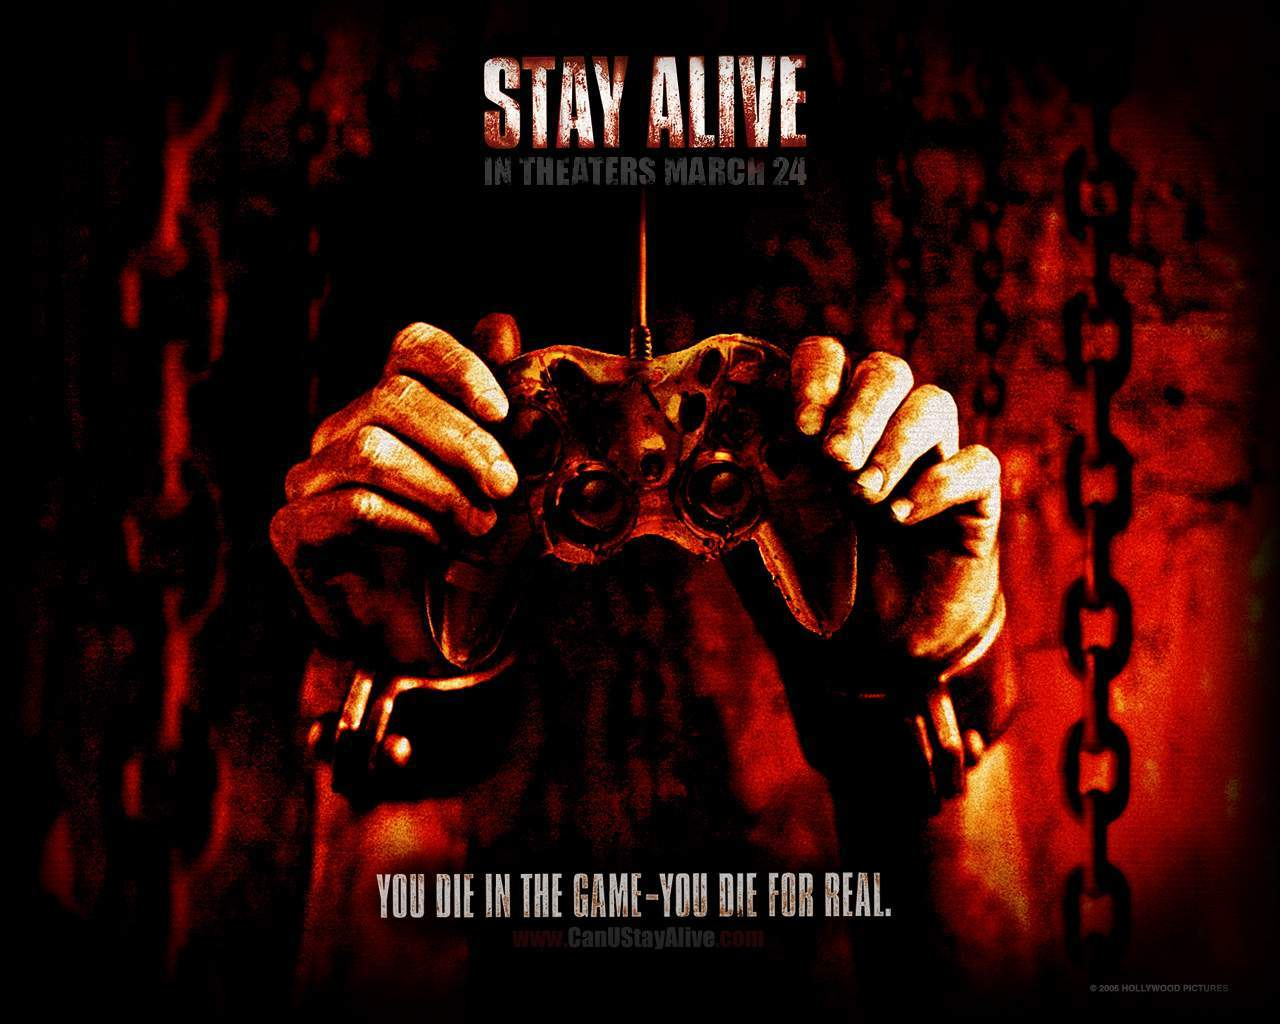 stay alive wallpaper 10007834 size 1280x1024 more stay alive wallpaper 1280x1024